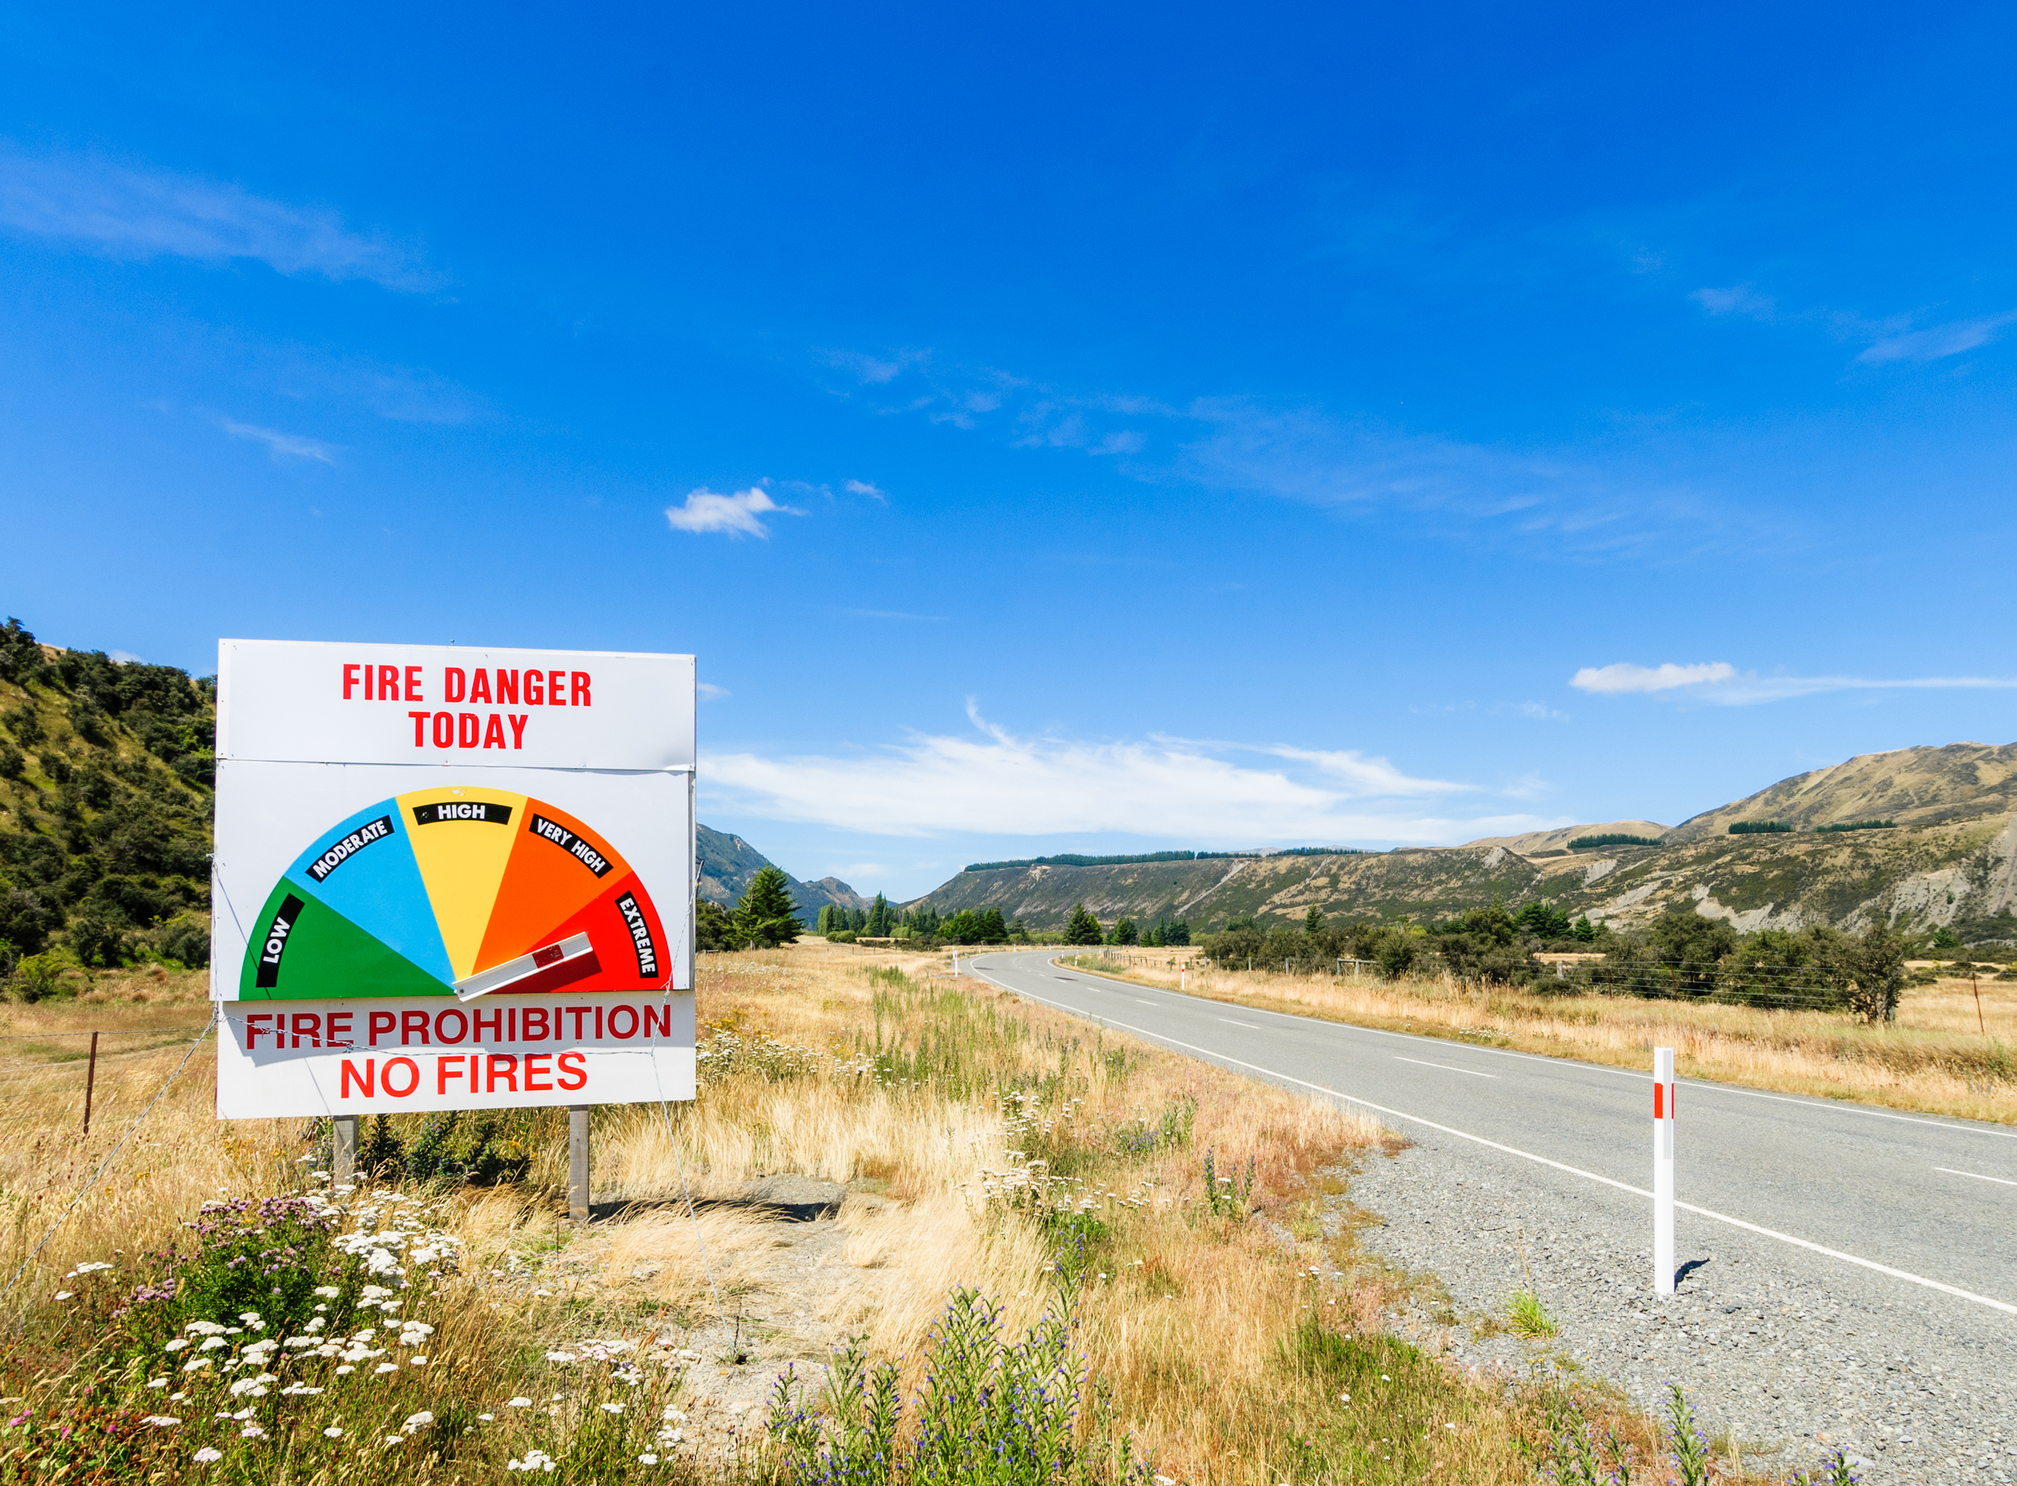 Extreme fire danger warning sign - fires prohibited